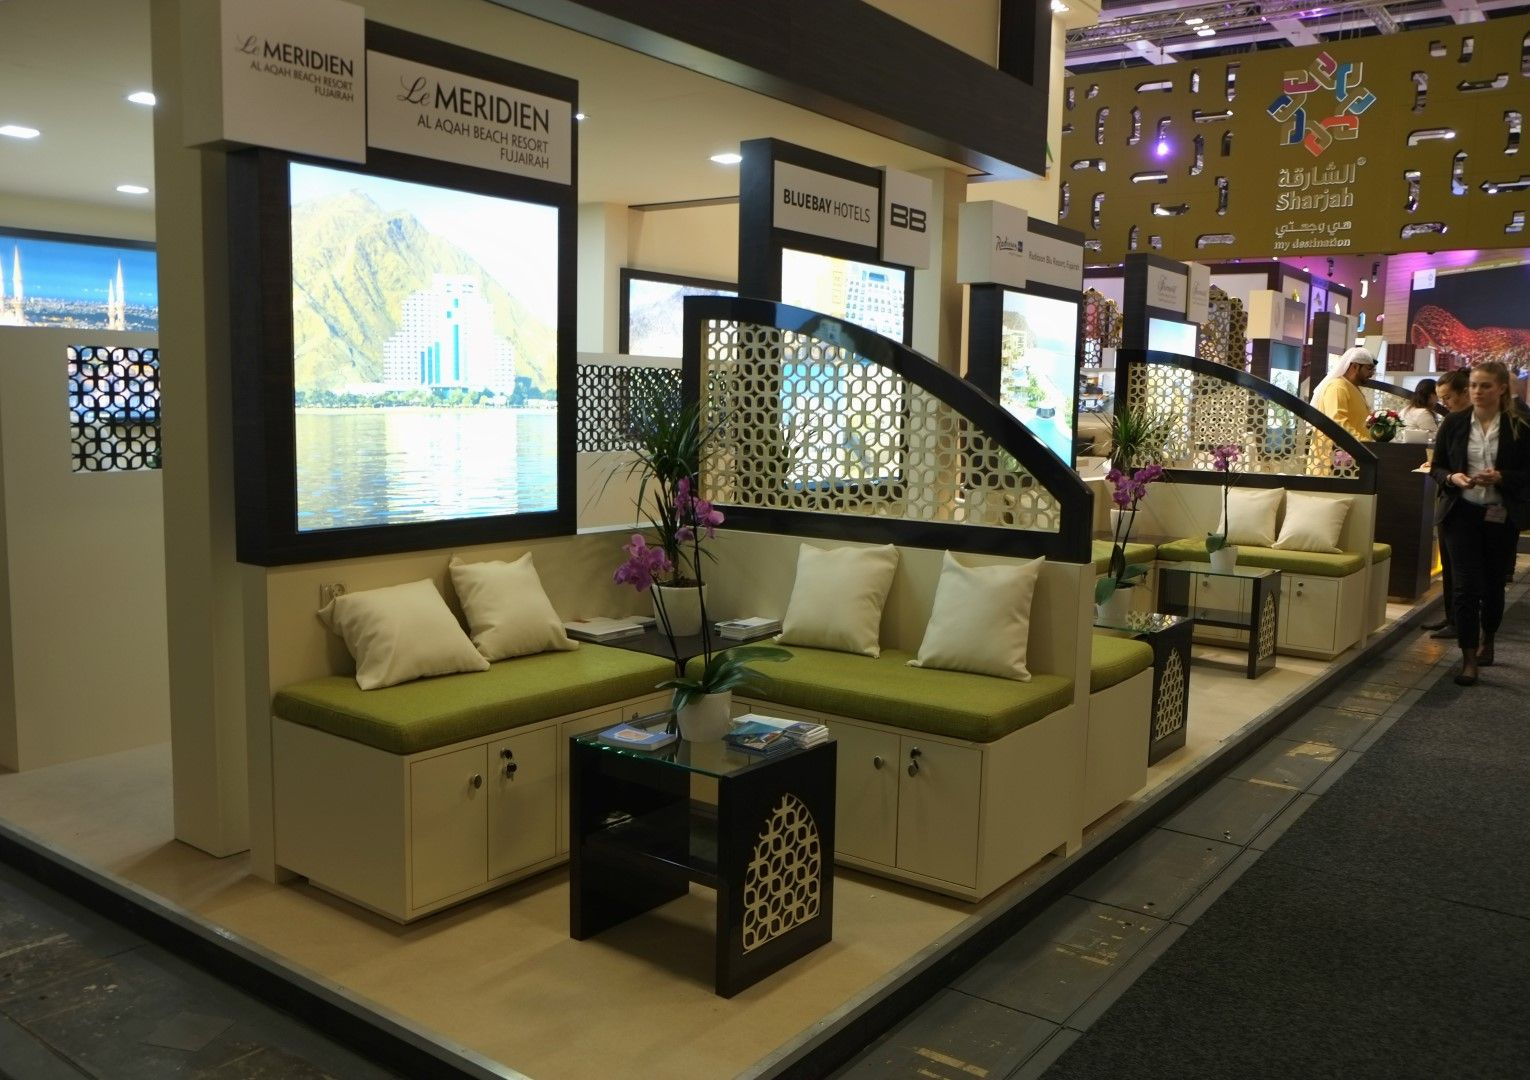 Fujairah Tourism Stand Design Build Delivers By Focusdirect At ITB BERLIN 2017